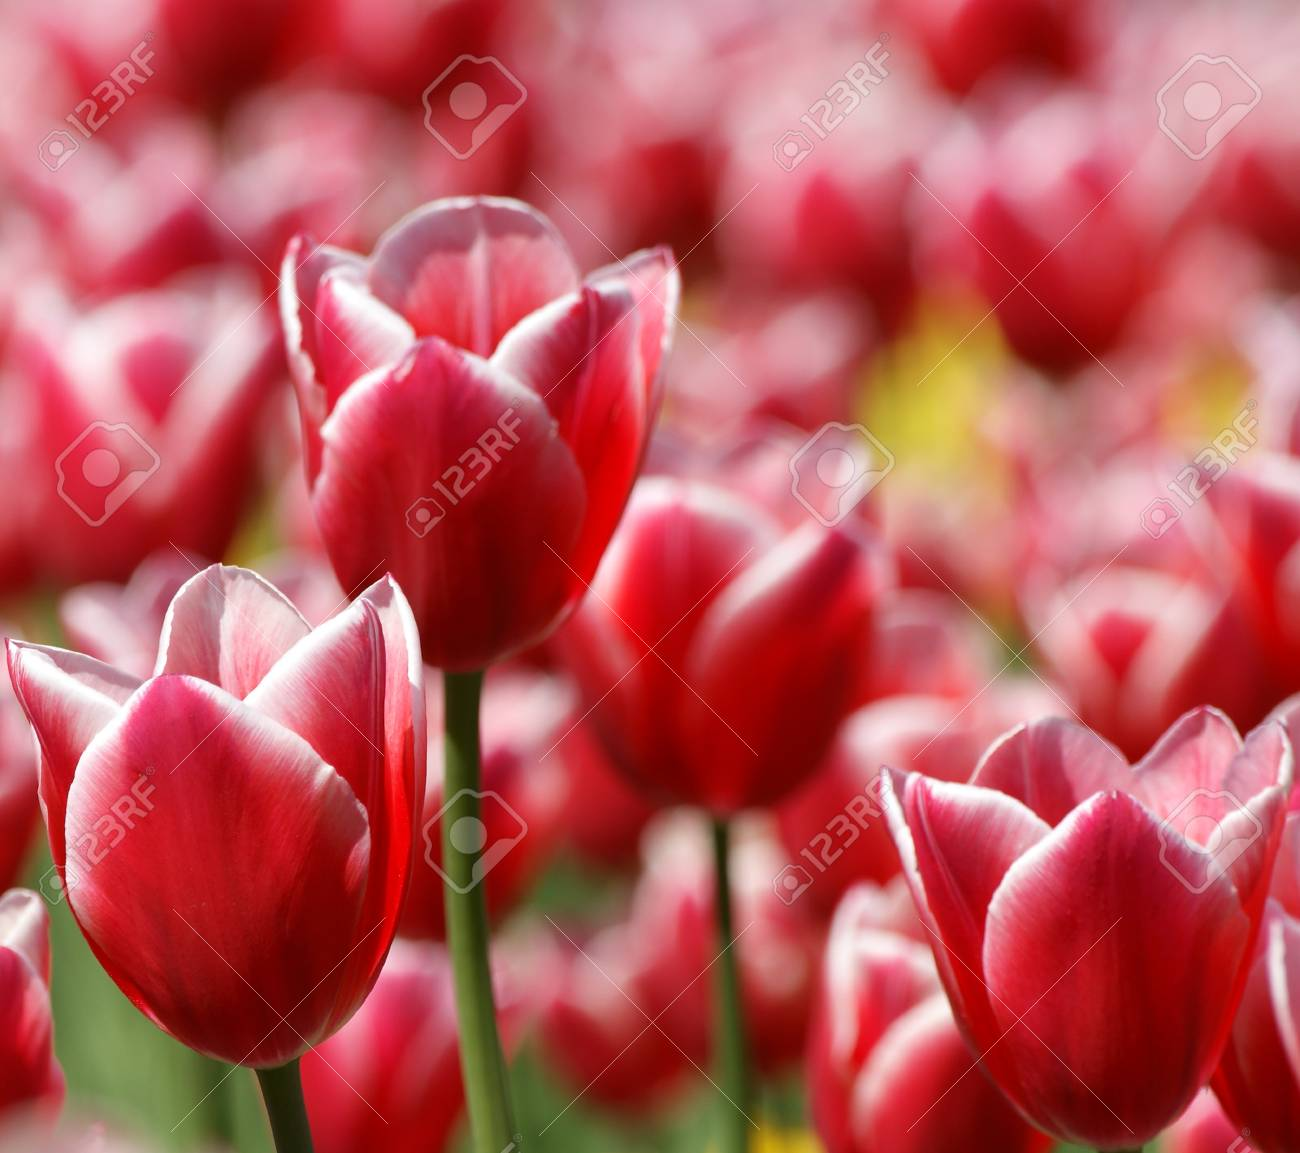 A field of beautiful red tulips closeup in the rays of sunlight Stock Photo - 11319720